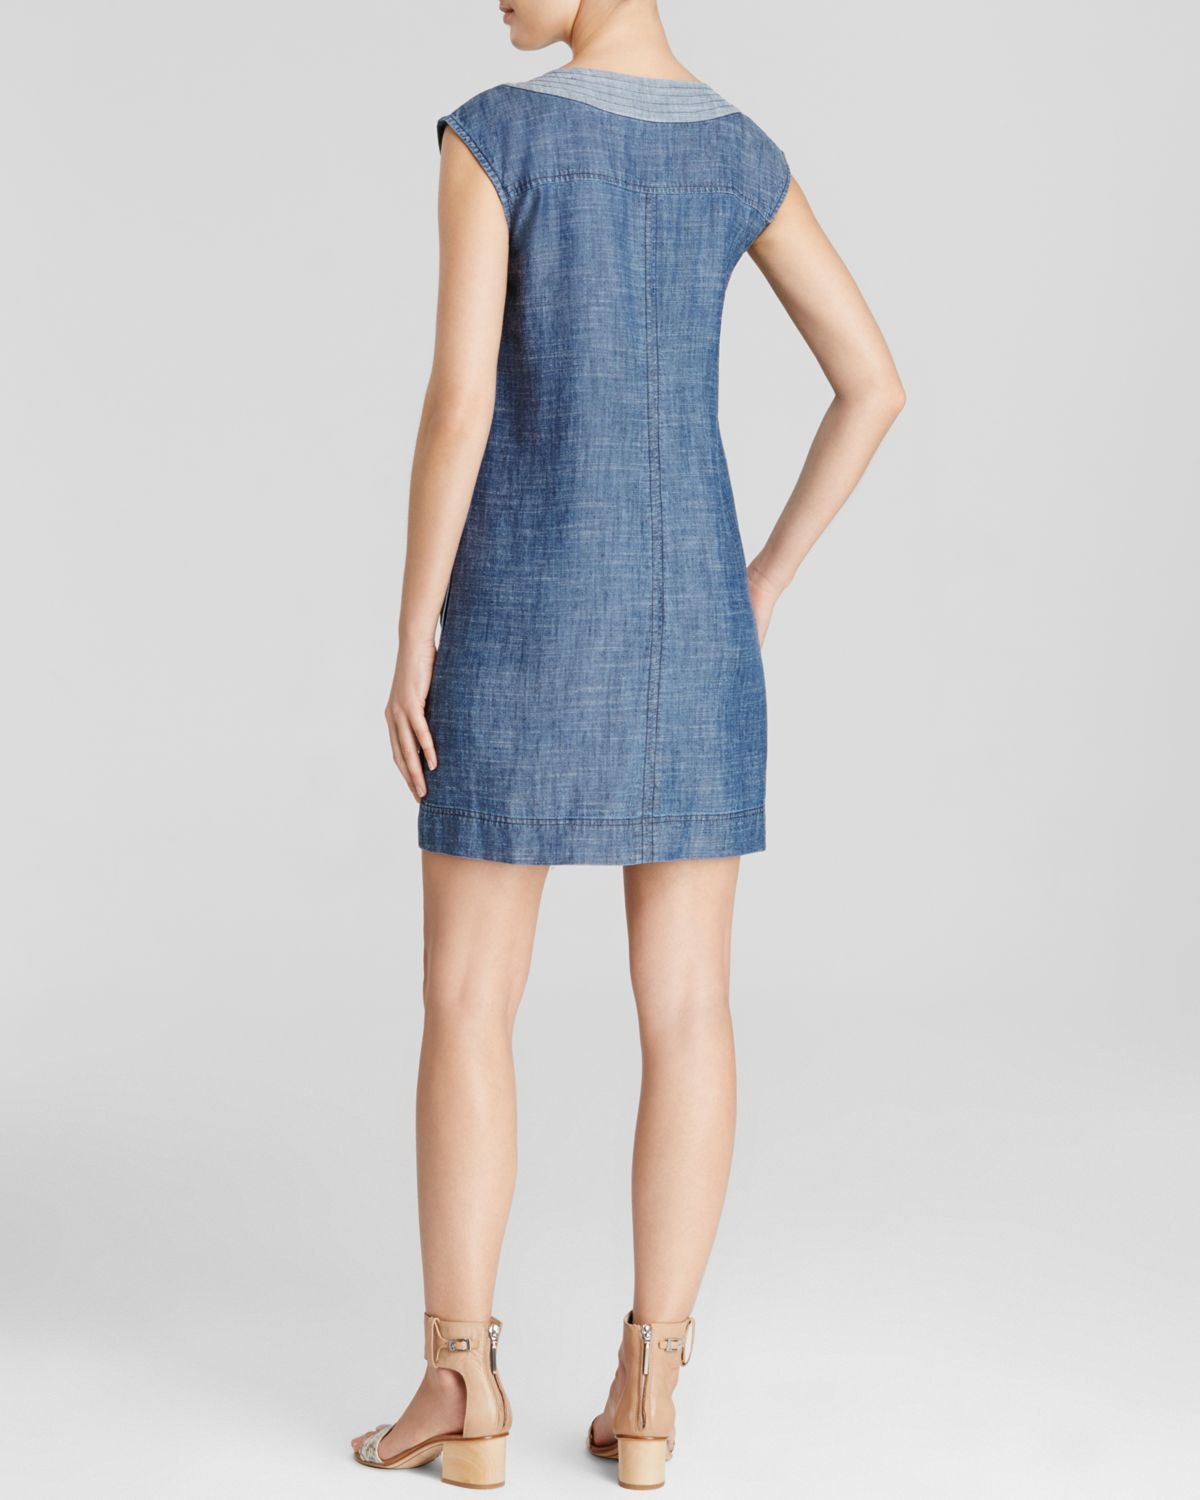 Description & Details. The most comfortable, garment-washed, chambray denim dress is embroidered for extra polish. Open collar. Stitched center front placket and cuffs secured with shell buttons.